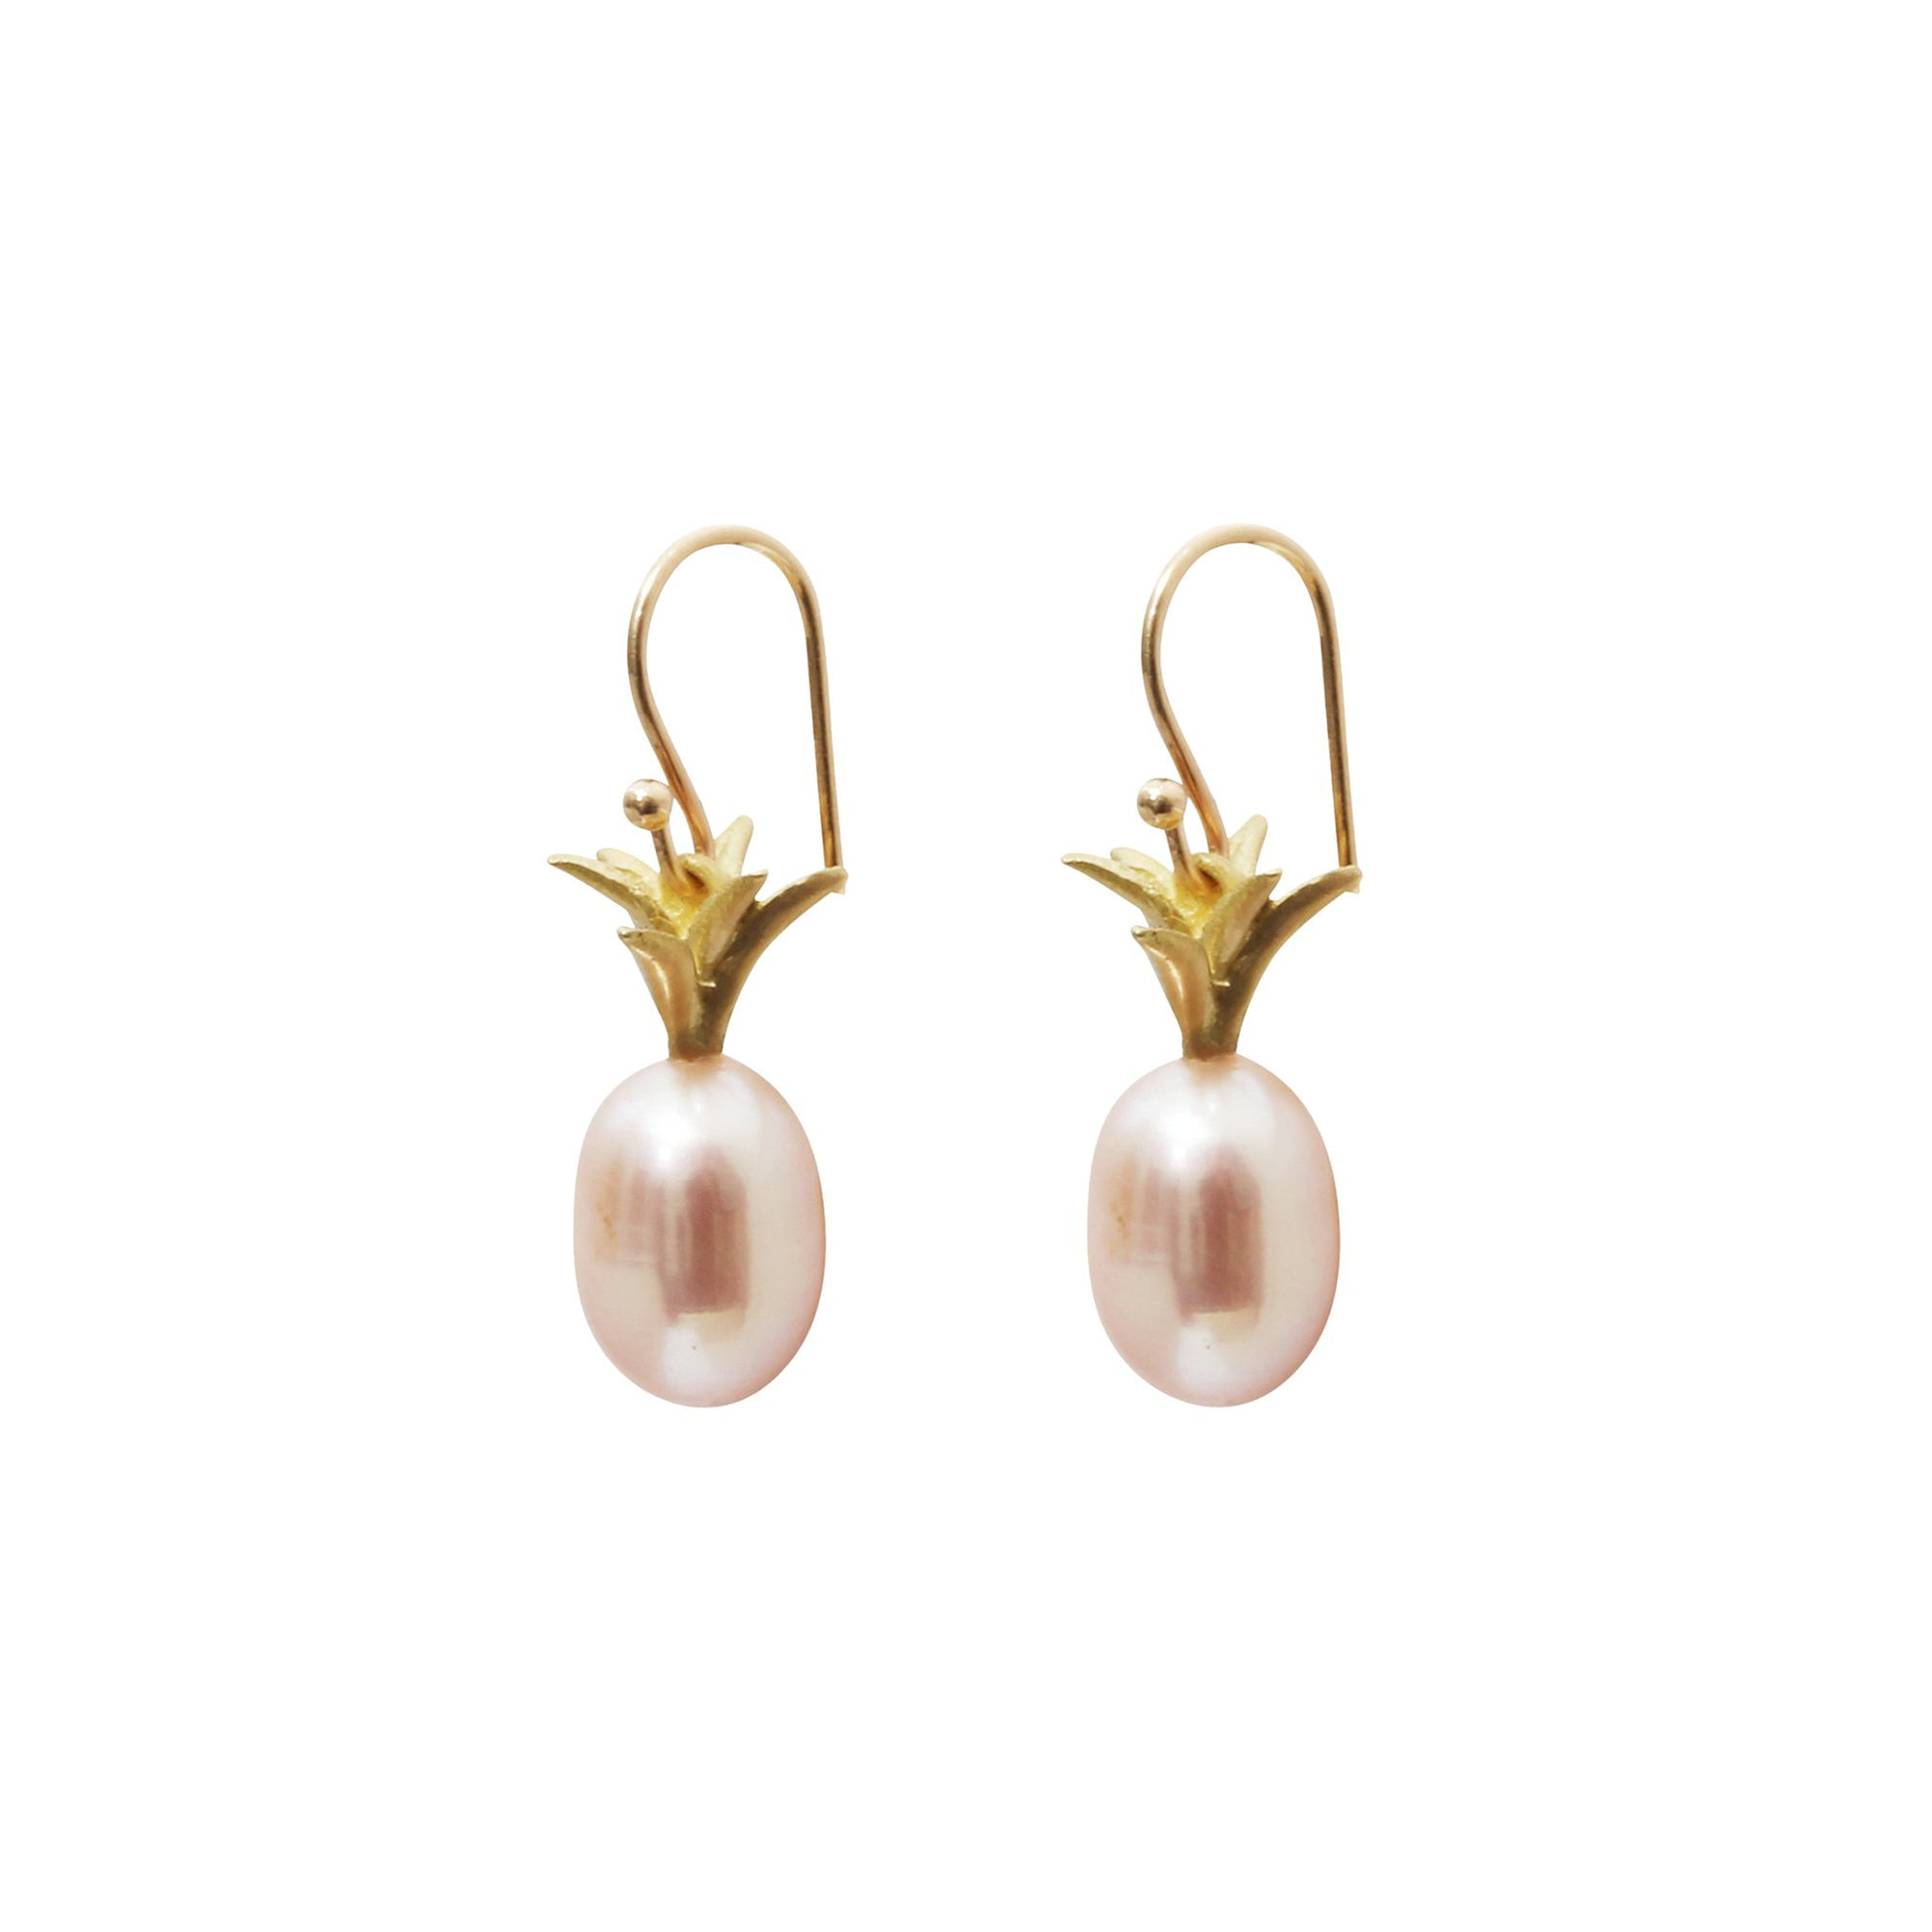 Gold & Pearl Pineapple Earrings by Annette Ferdinandsen for Broken English Jewelry